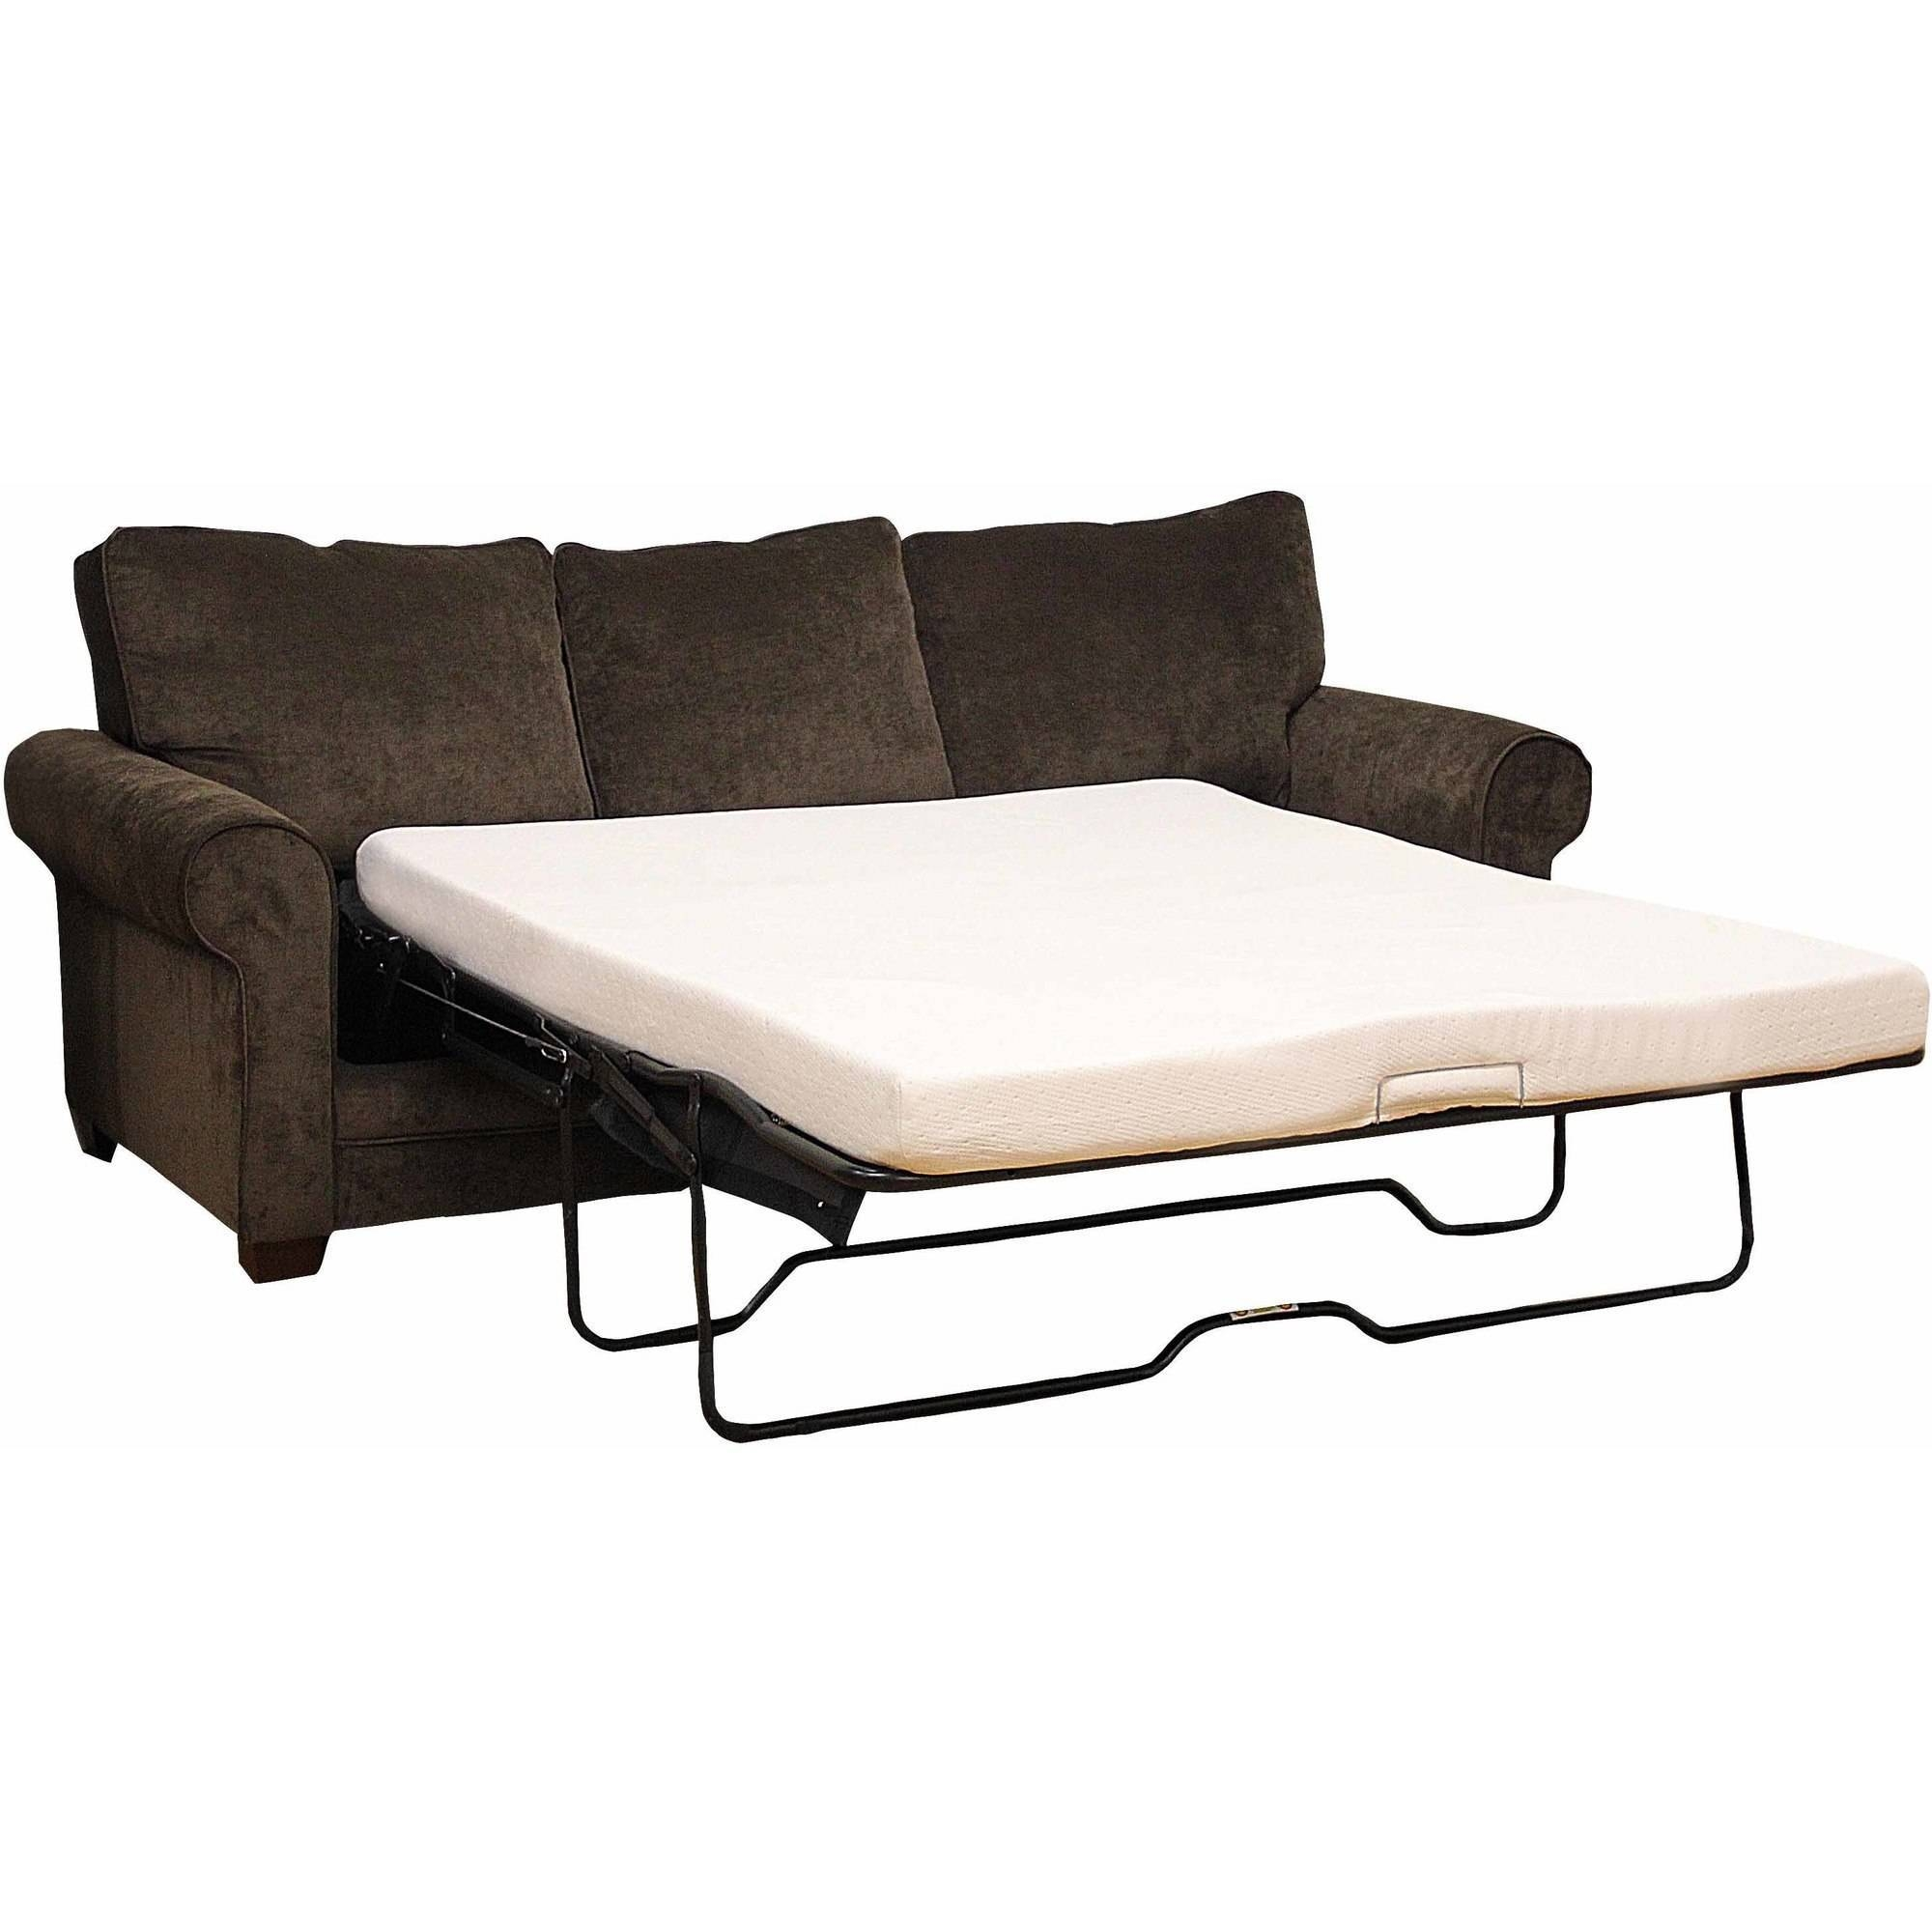 "Modern Sleep Memory Foam 4.5"" Sofa Bed Mattress, Multiple Sizes throughout Sofas With Beds (Image 13 of 30)"